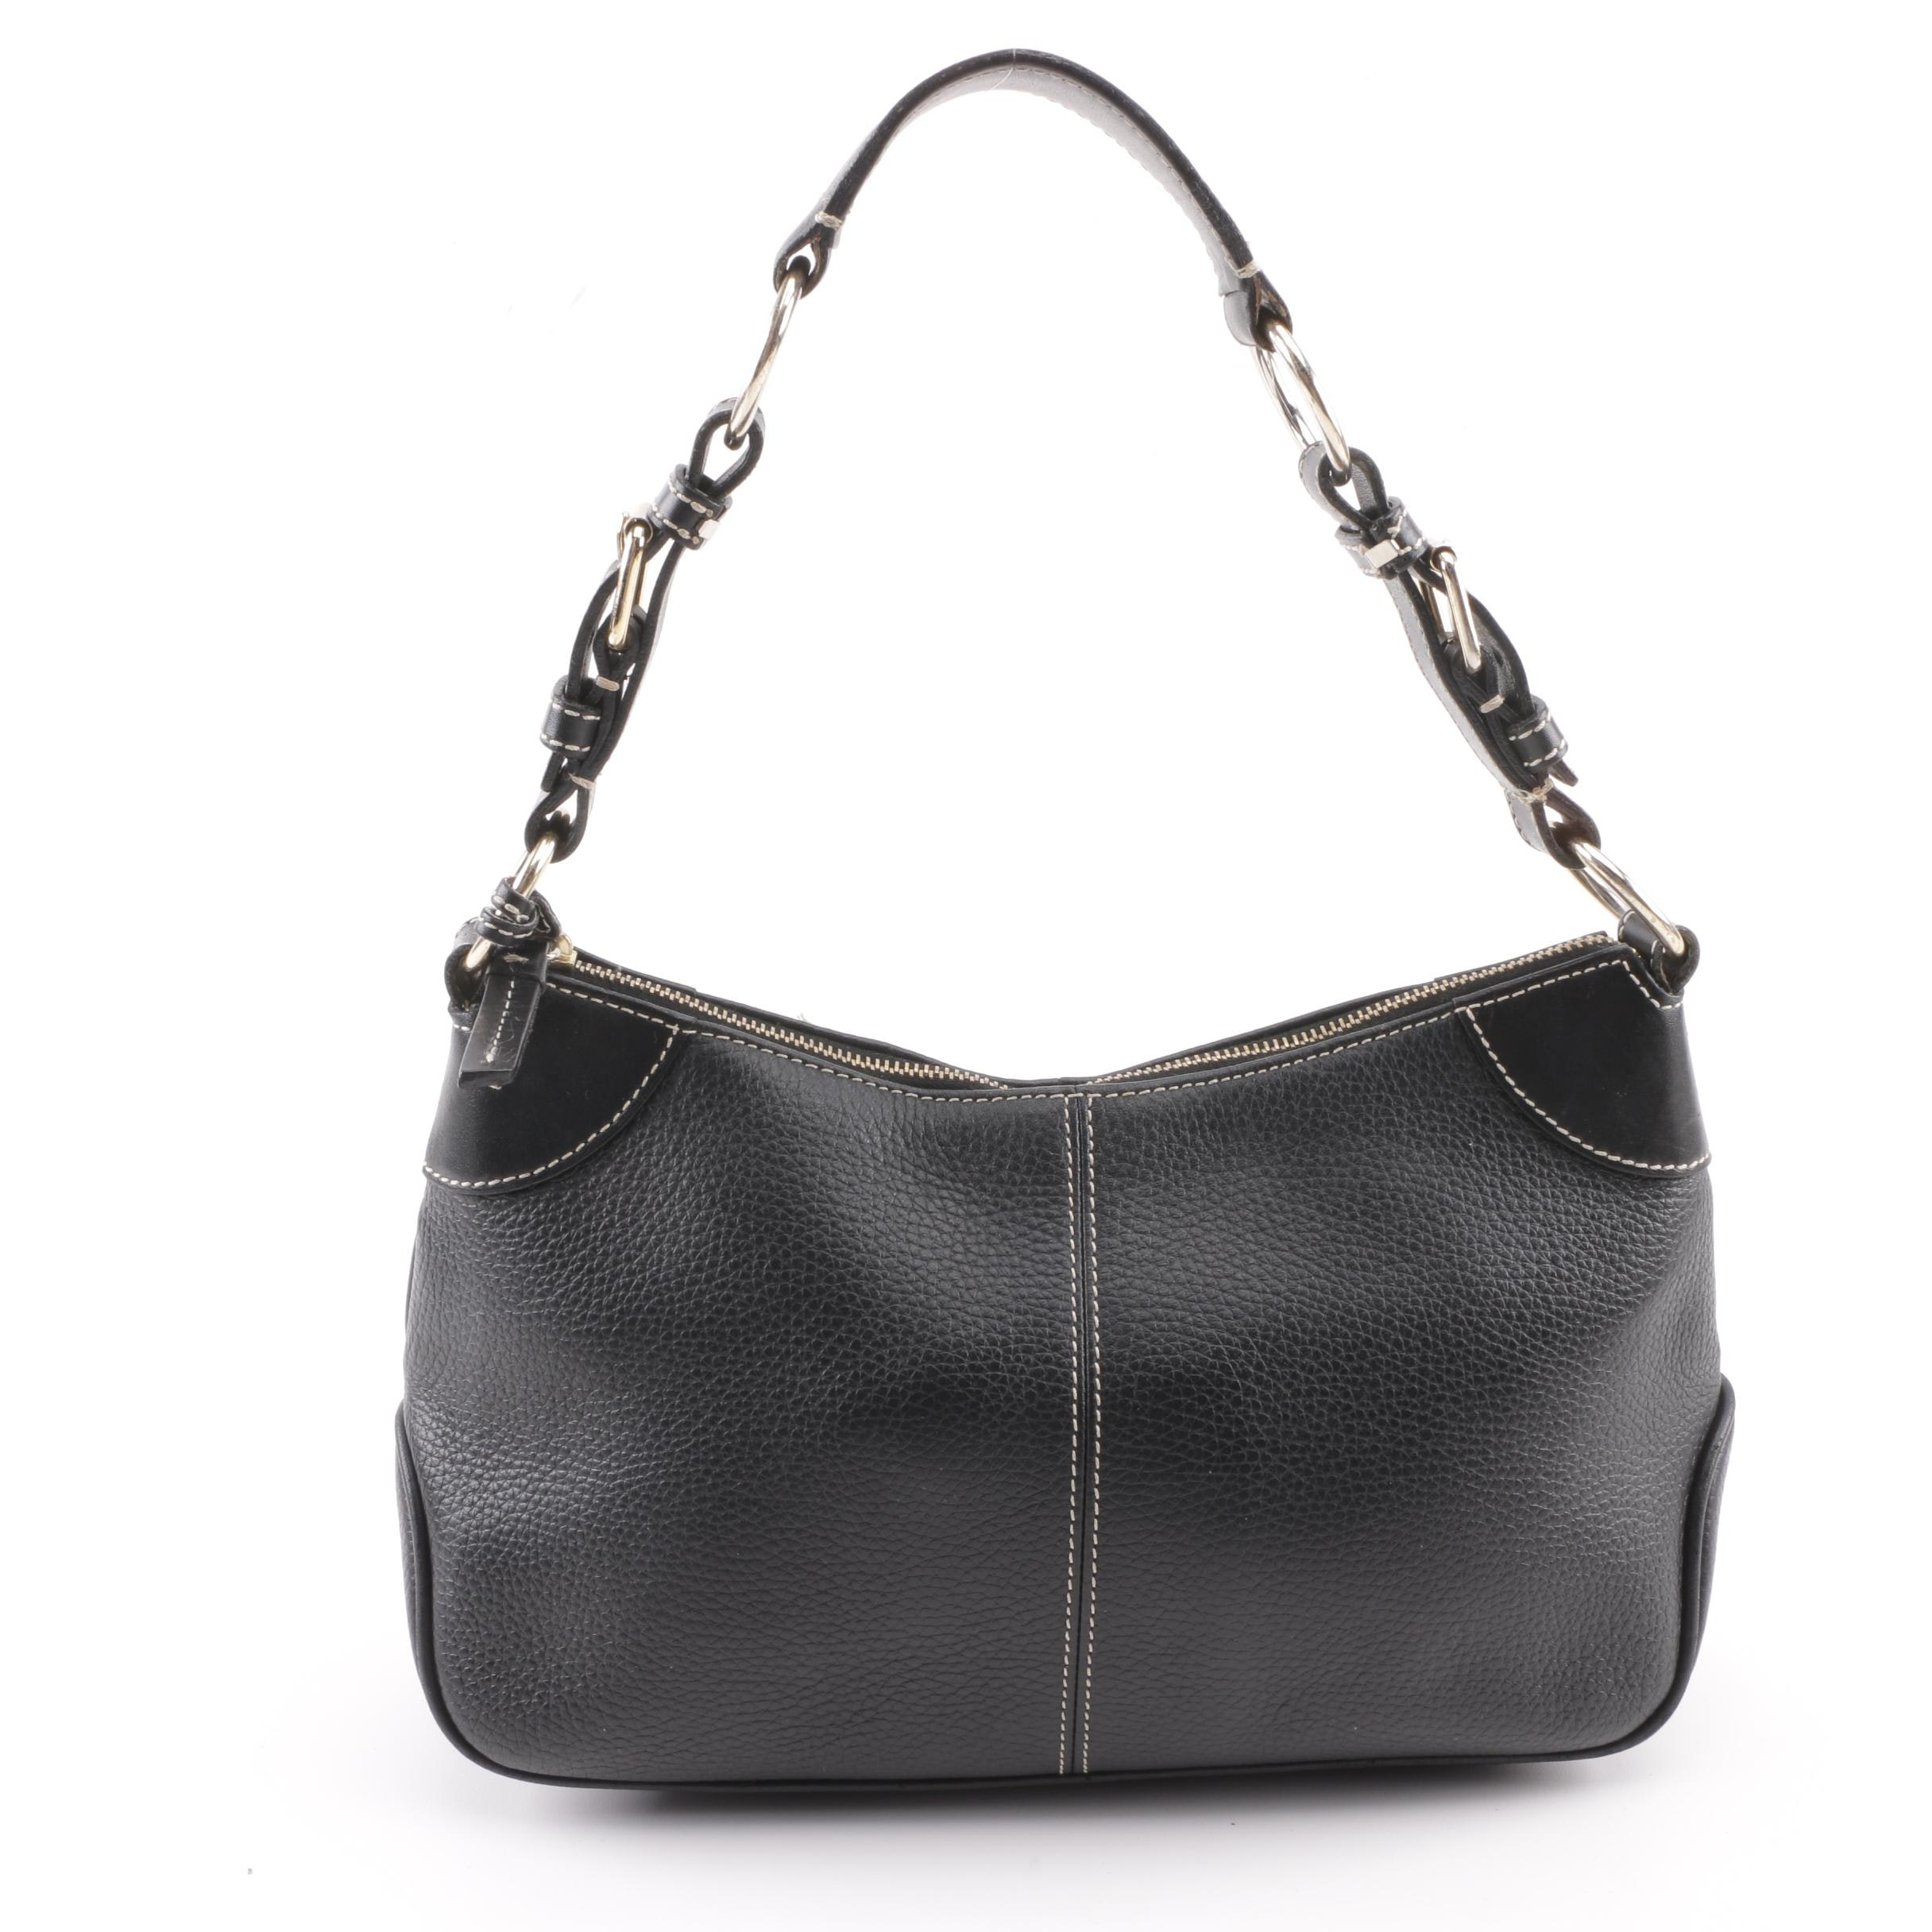 Dooney & Bourke All-Weather Black Leather Top Handle Bag